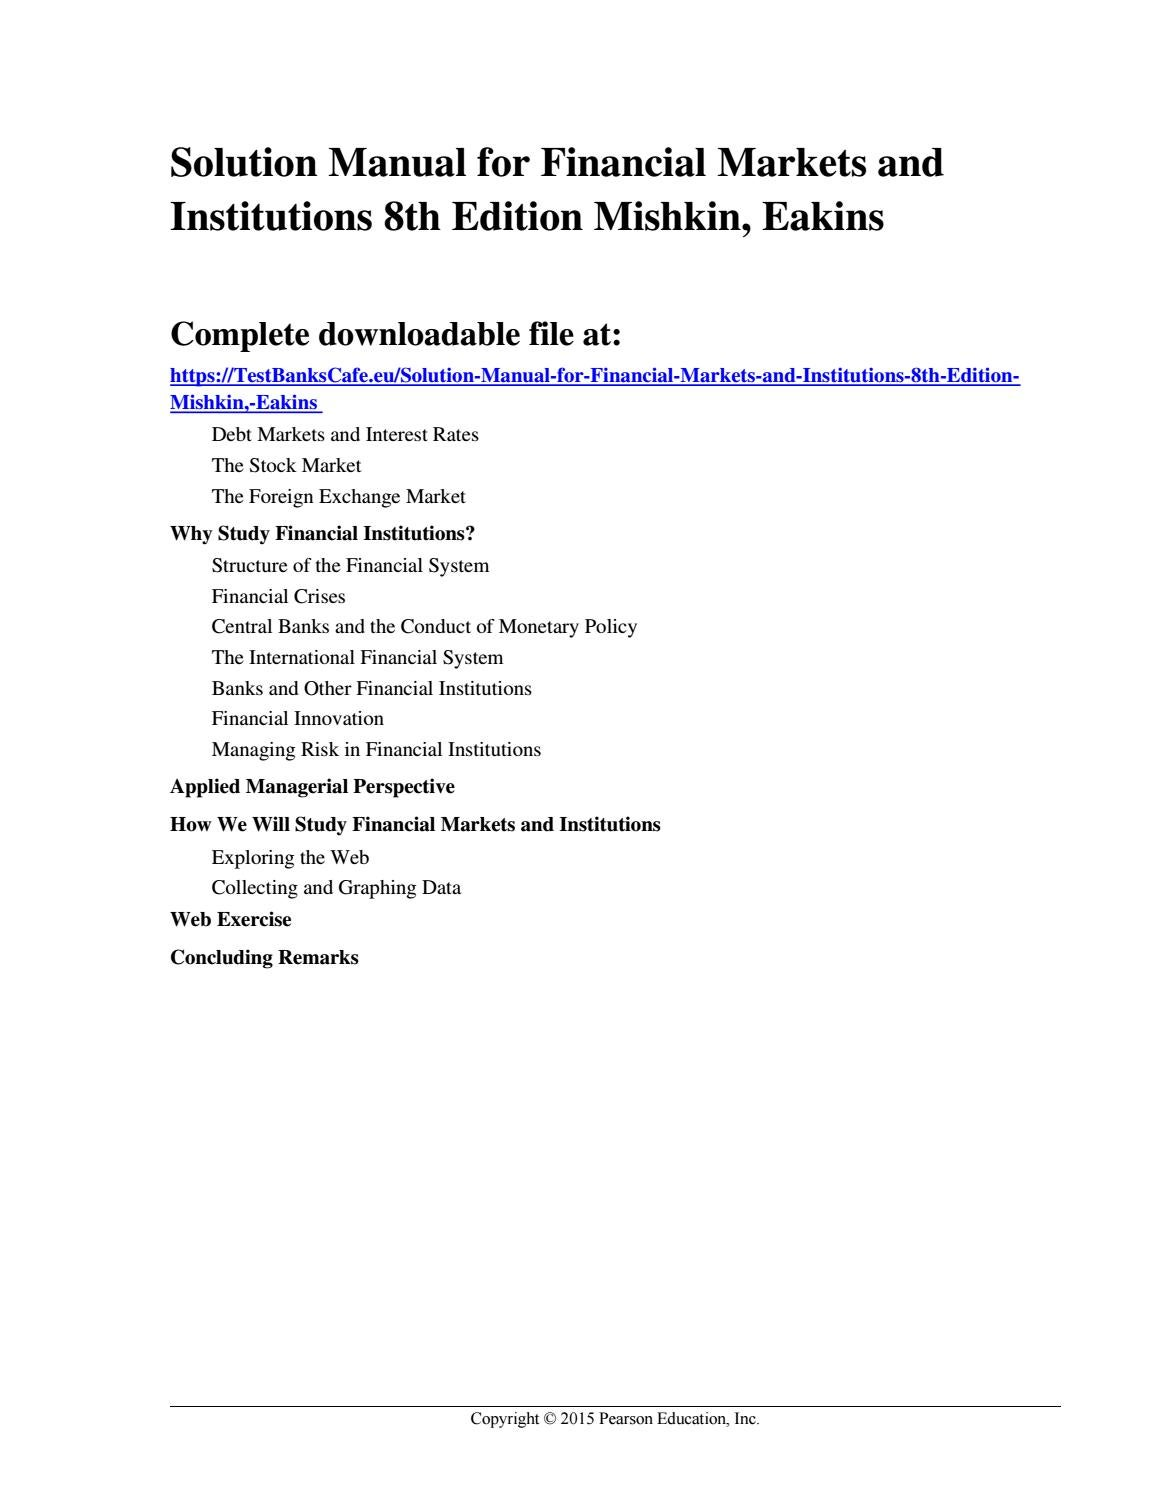 Solution Manual for Financial Markets and Institutions 8th Edition Mishkin,  Eakins by a669133557 - issuu